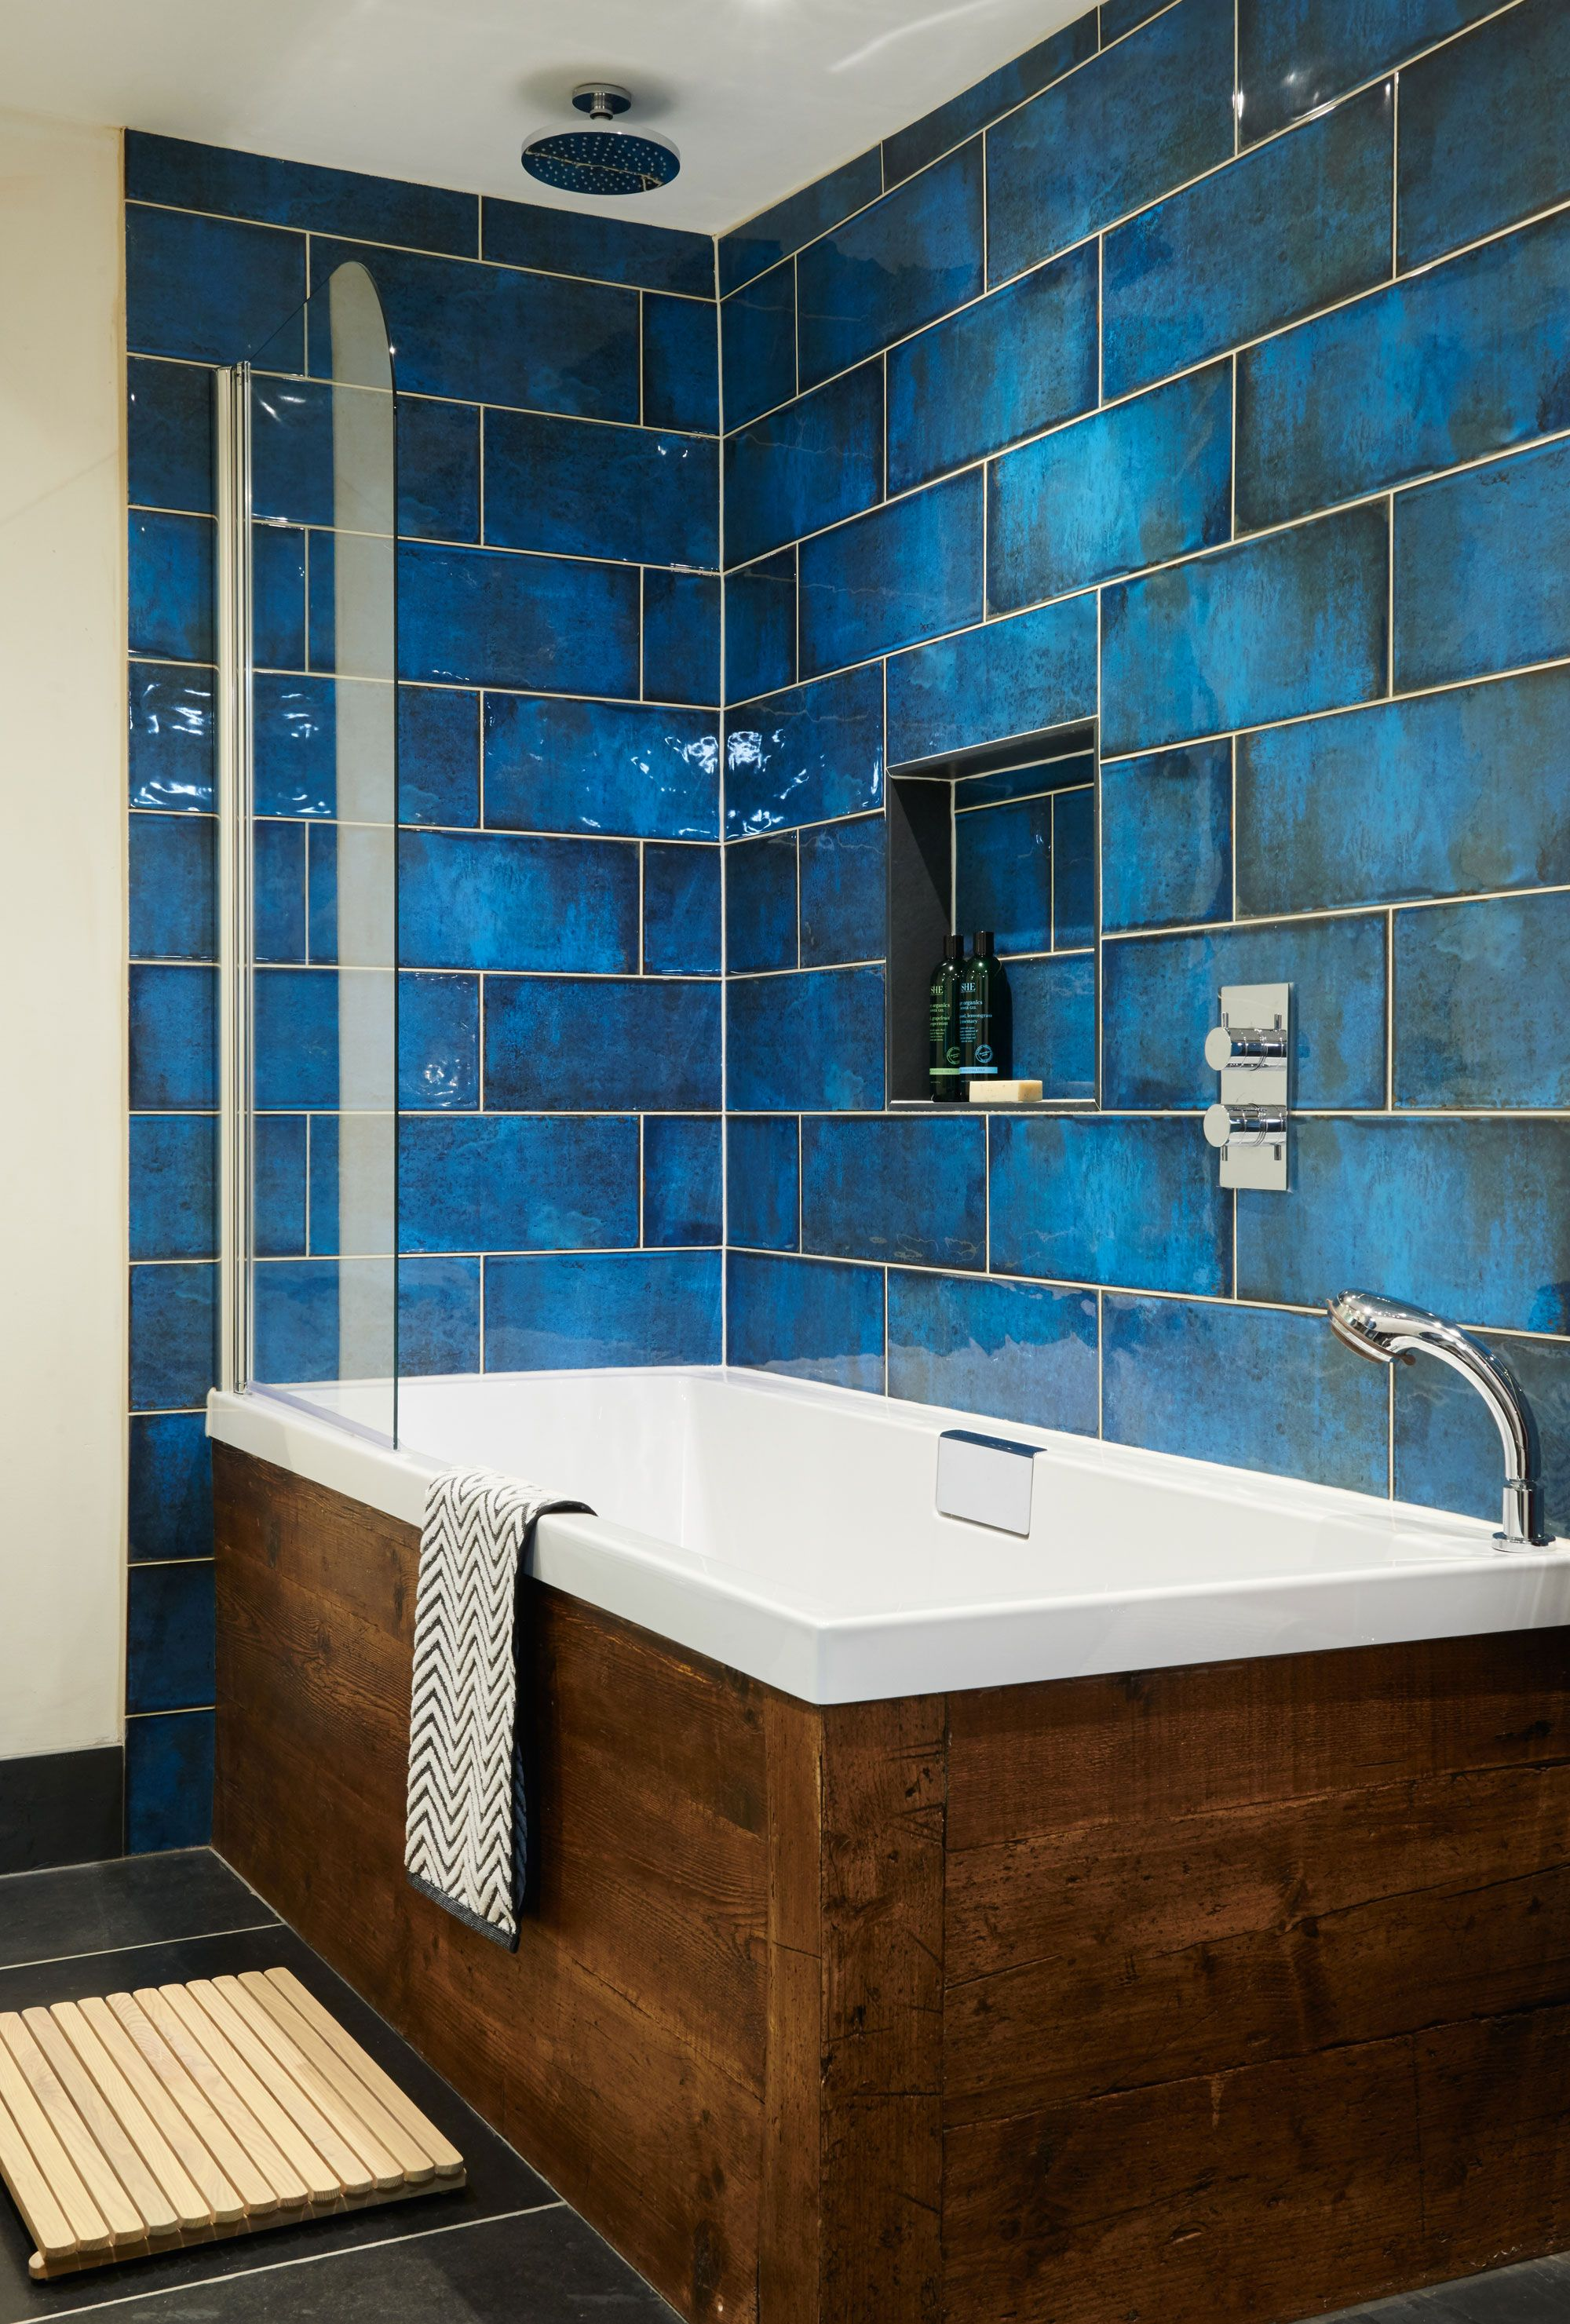 Montblanc Blue Ceramic Tile Factors originals and Walls